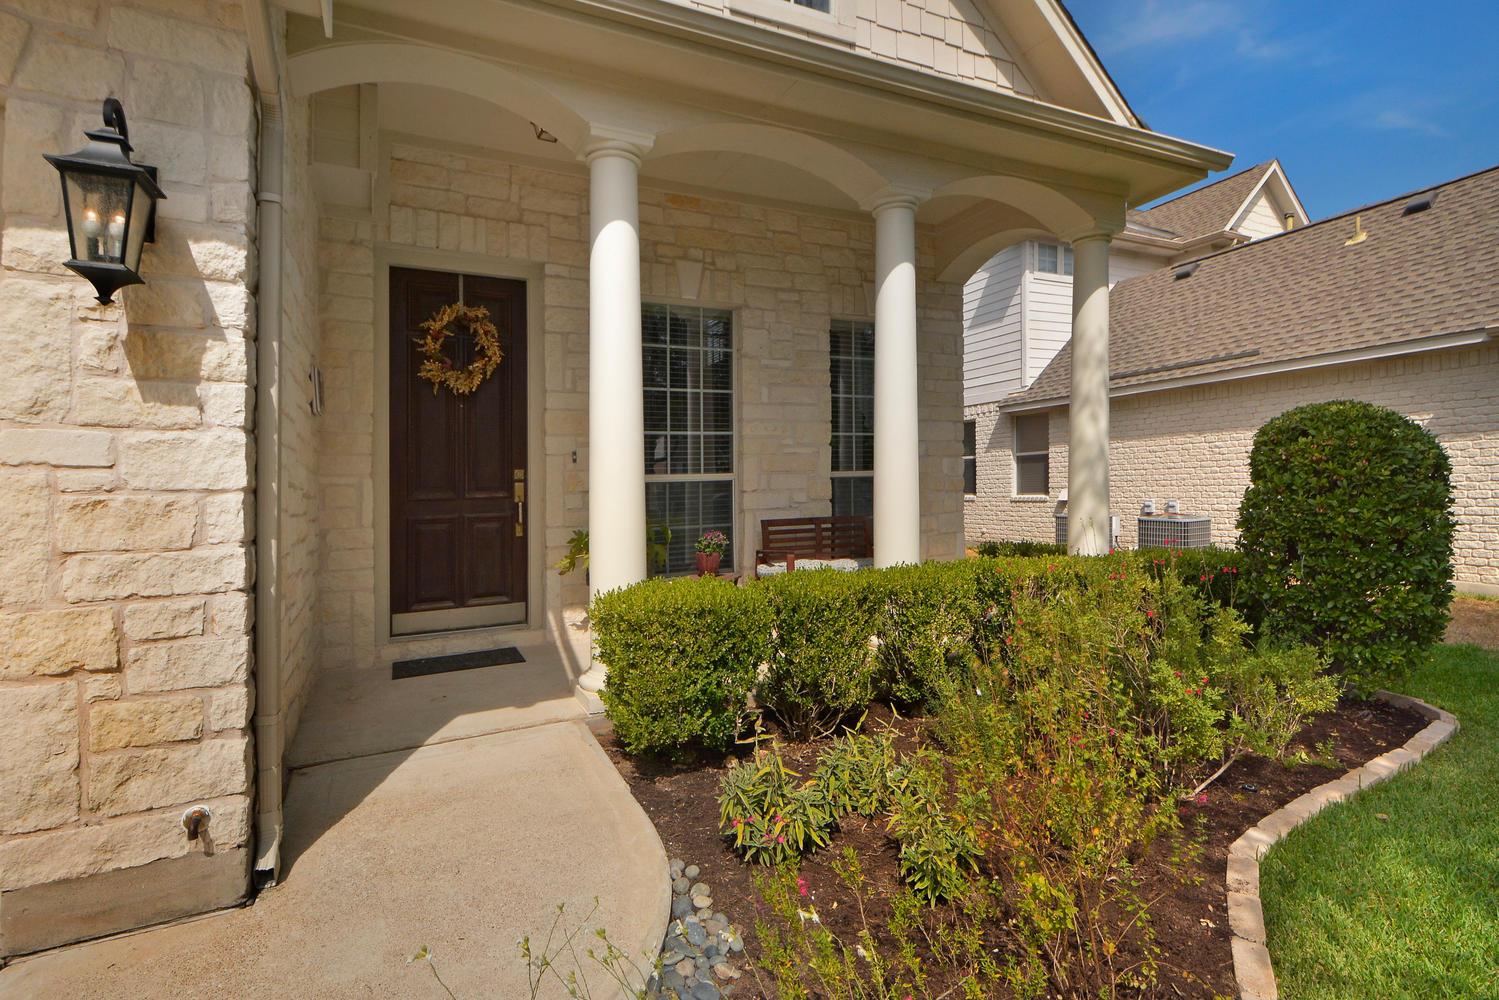 5 areas sellers should pay extra attention to when preparing to sell front porch